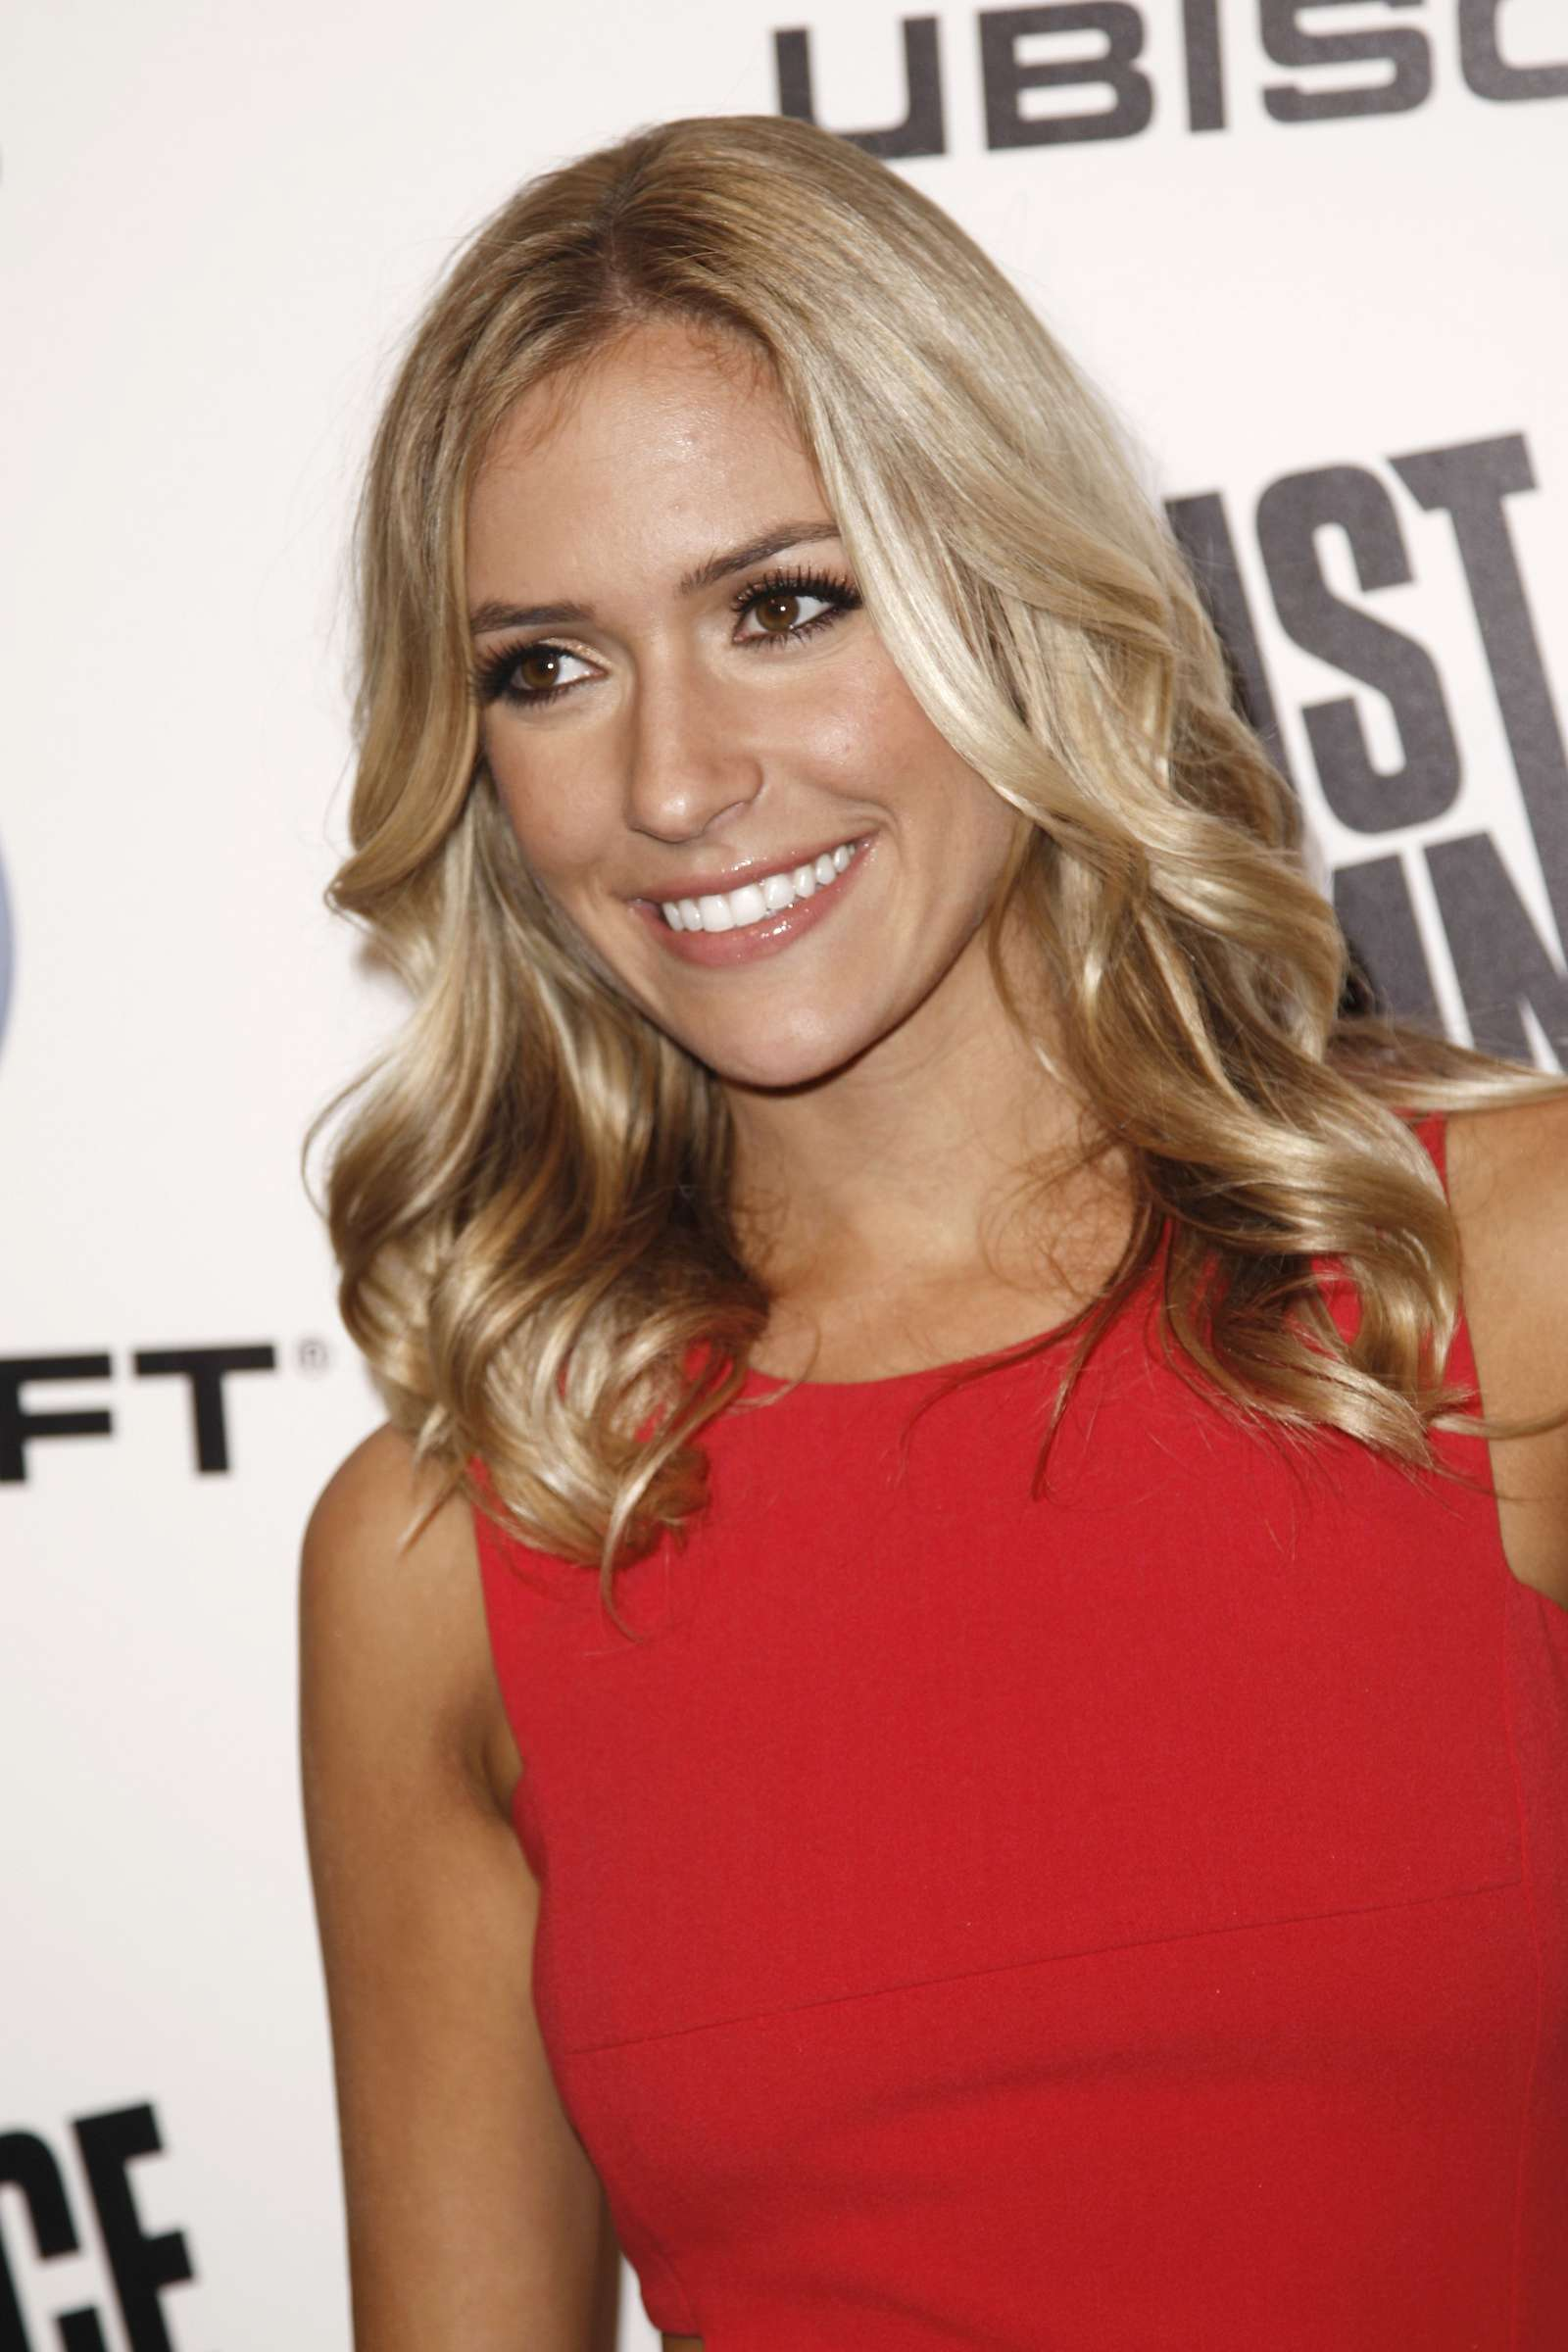 Kristin Cavallari Wear Red Dress At Just Dance Launch Party-05